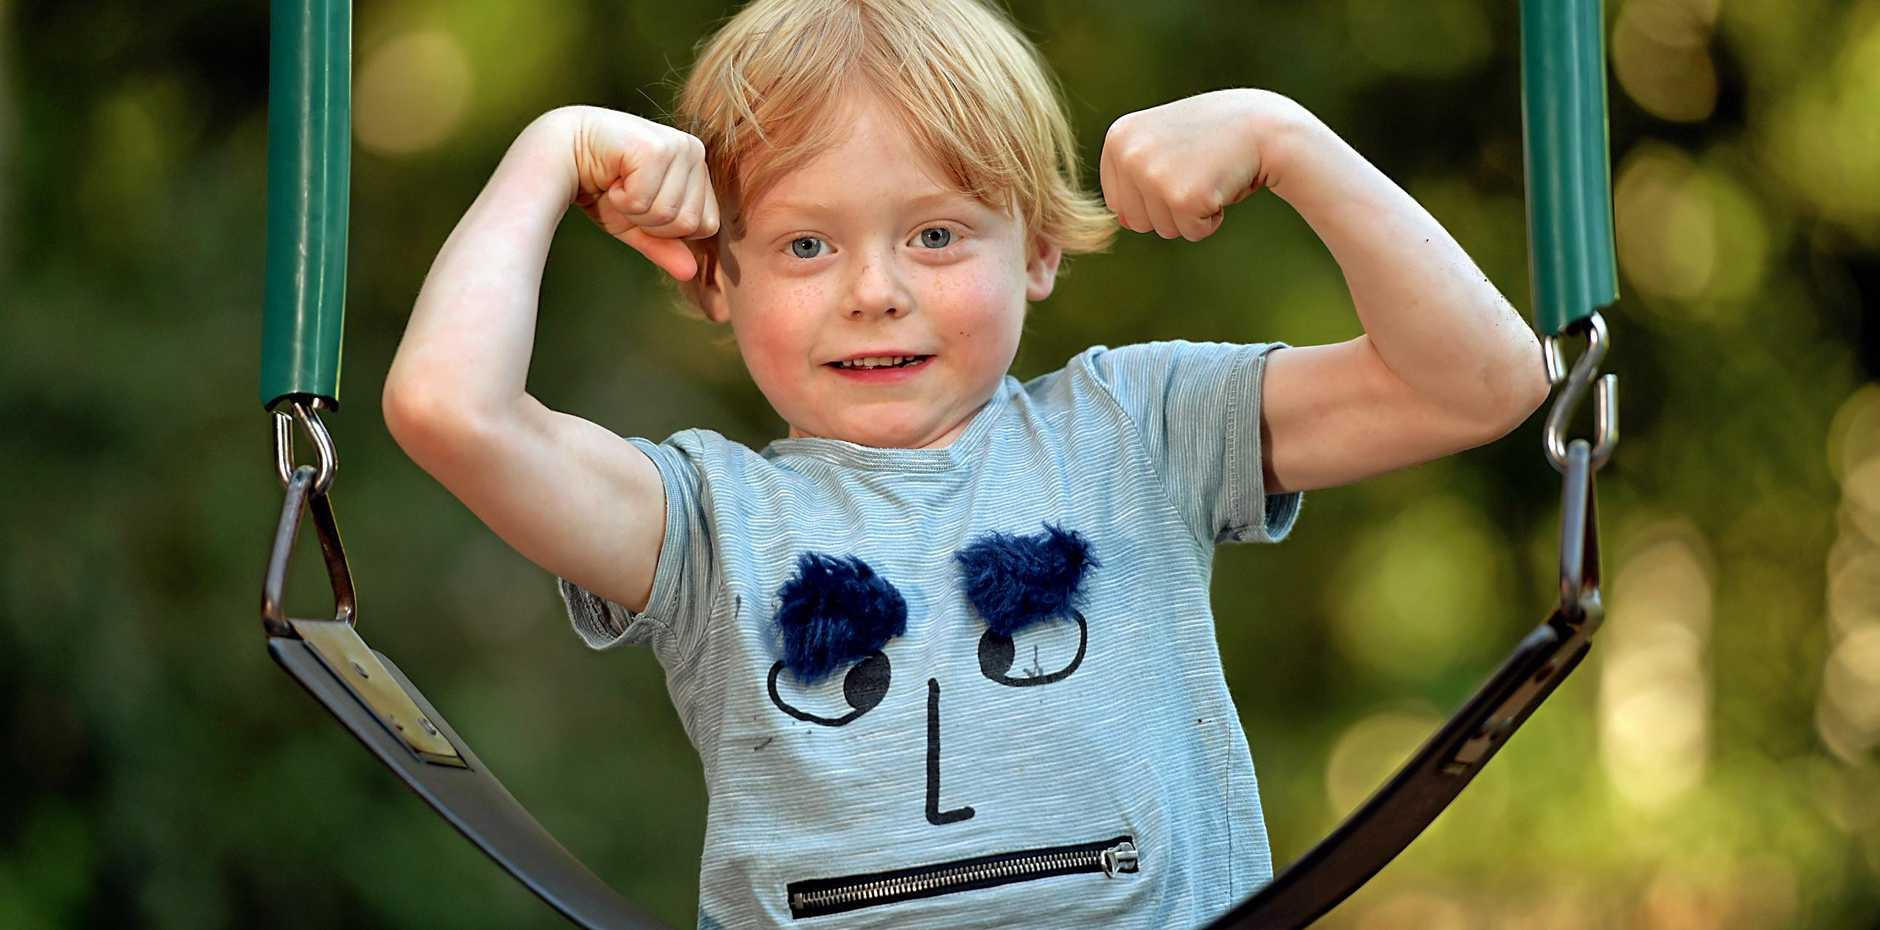 Five-year-old Eli Jeffcoat has recovered from having a tumour removed from his stomach. He wants you to donate to the Channel Nine Telethon that supports the Children's Hospital Foundation.